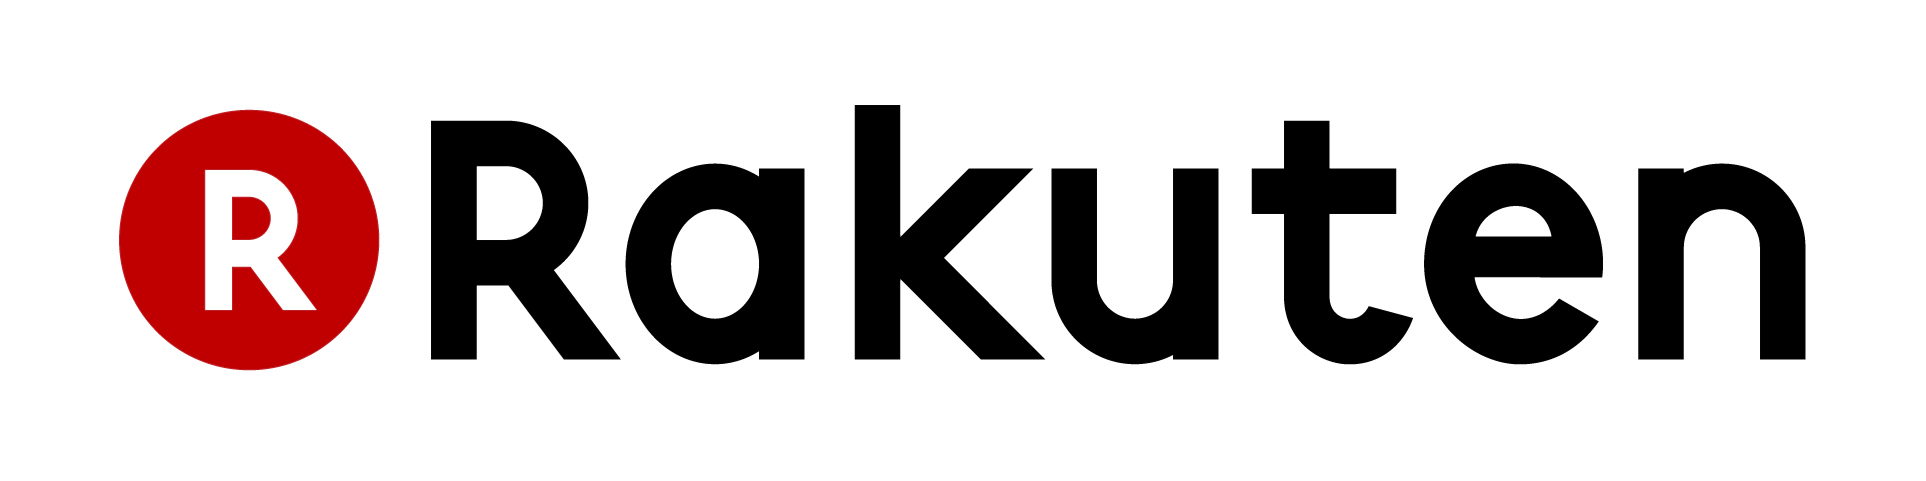 rakuten-logo-global.jpg